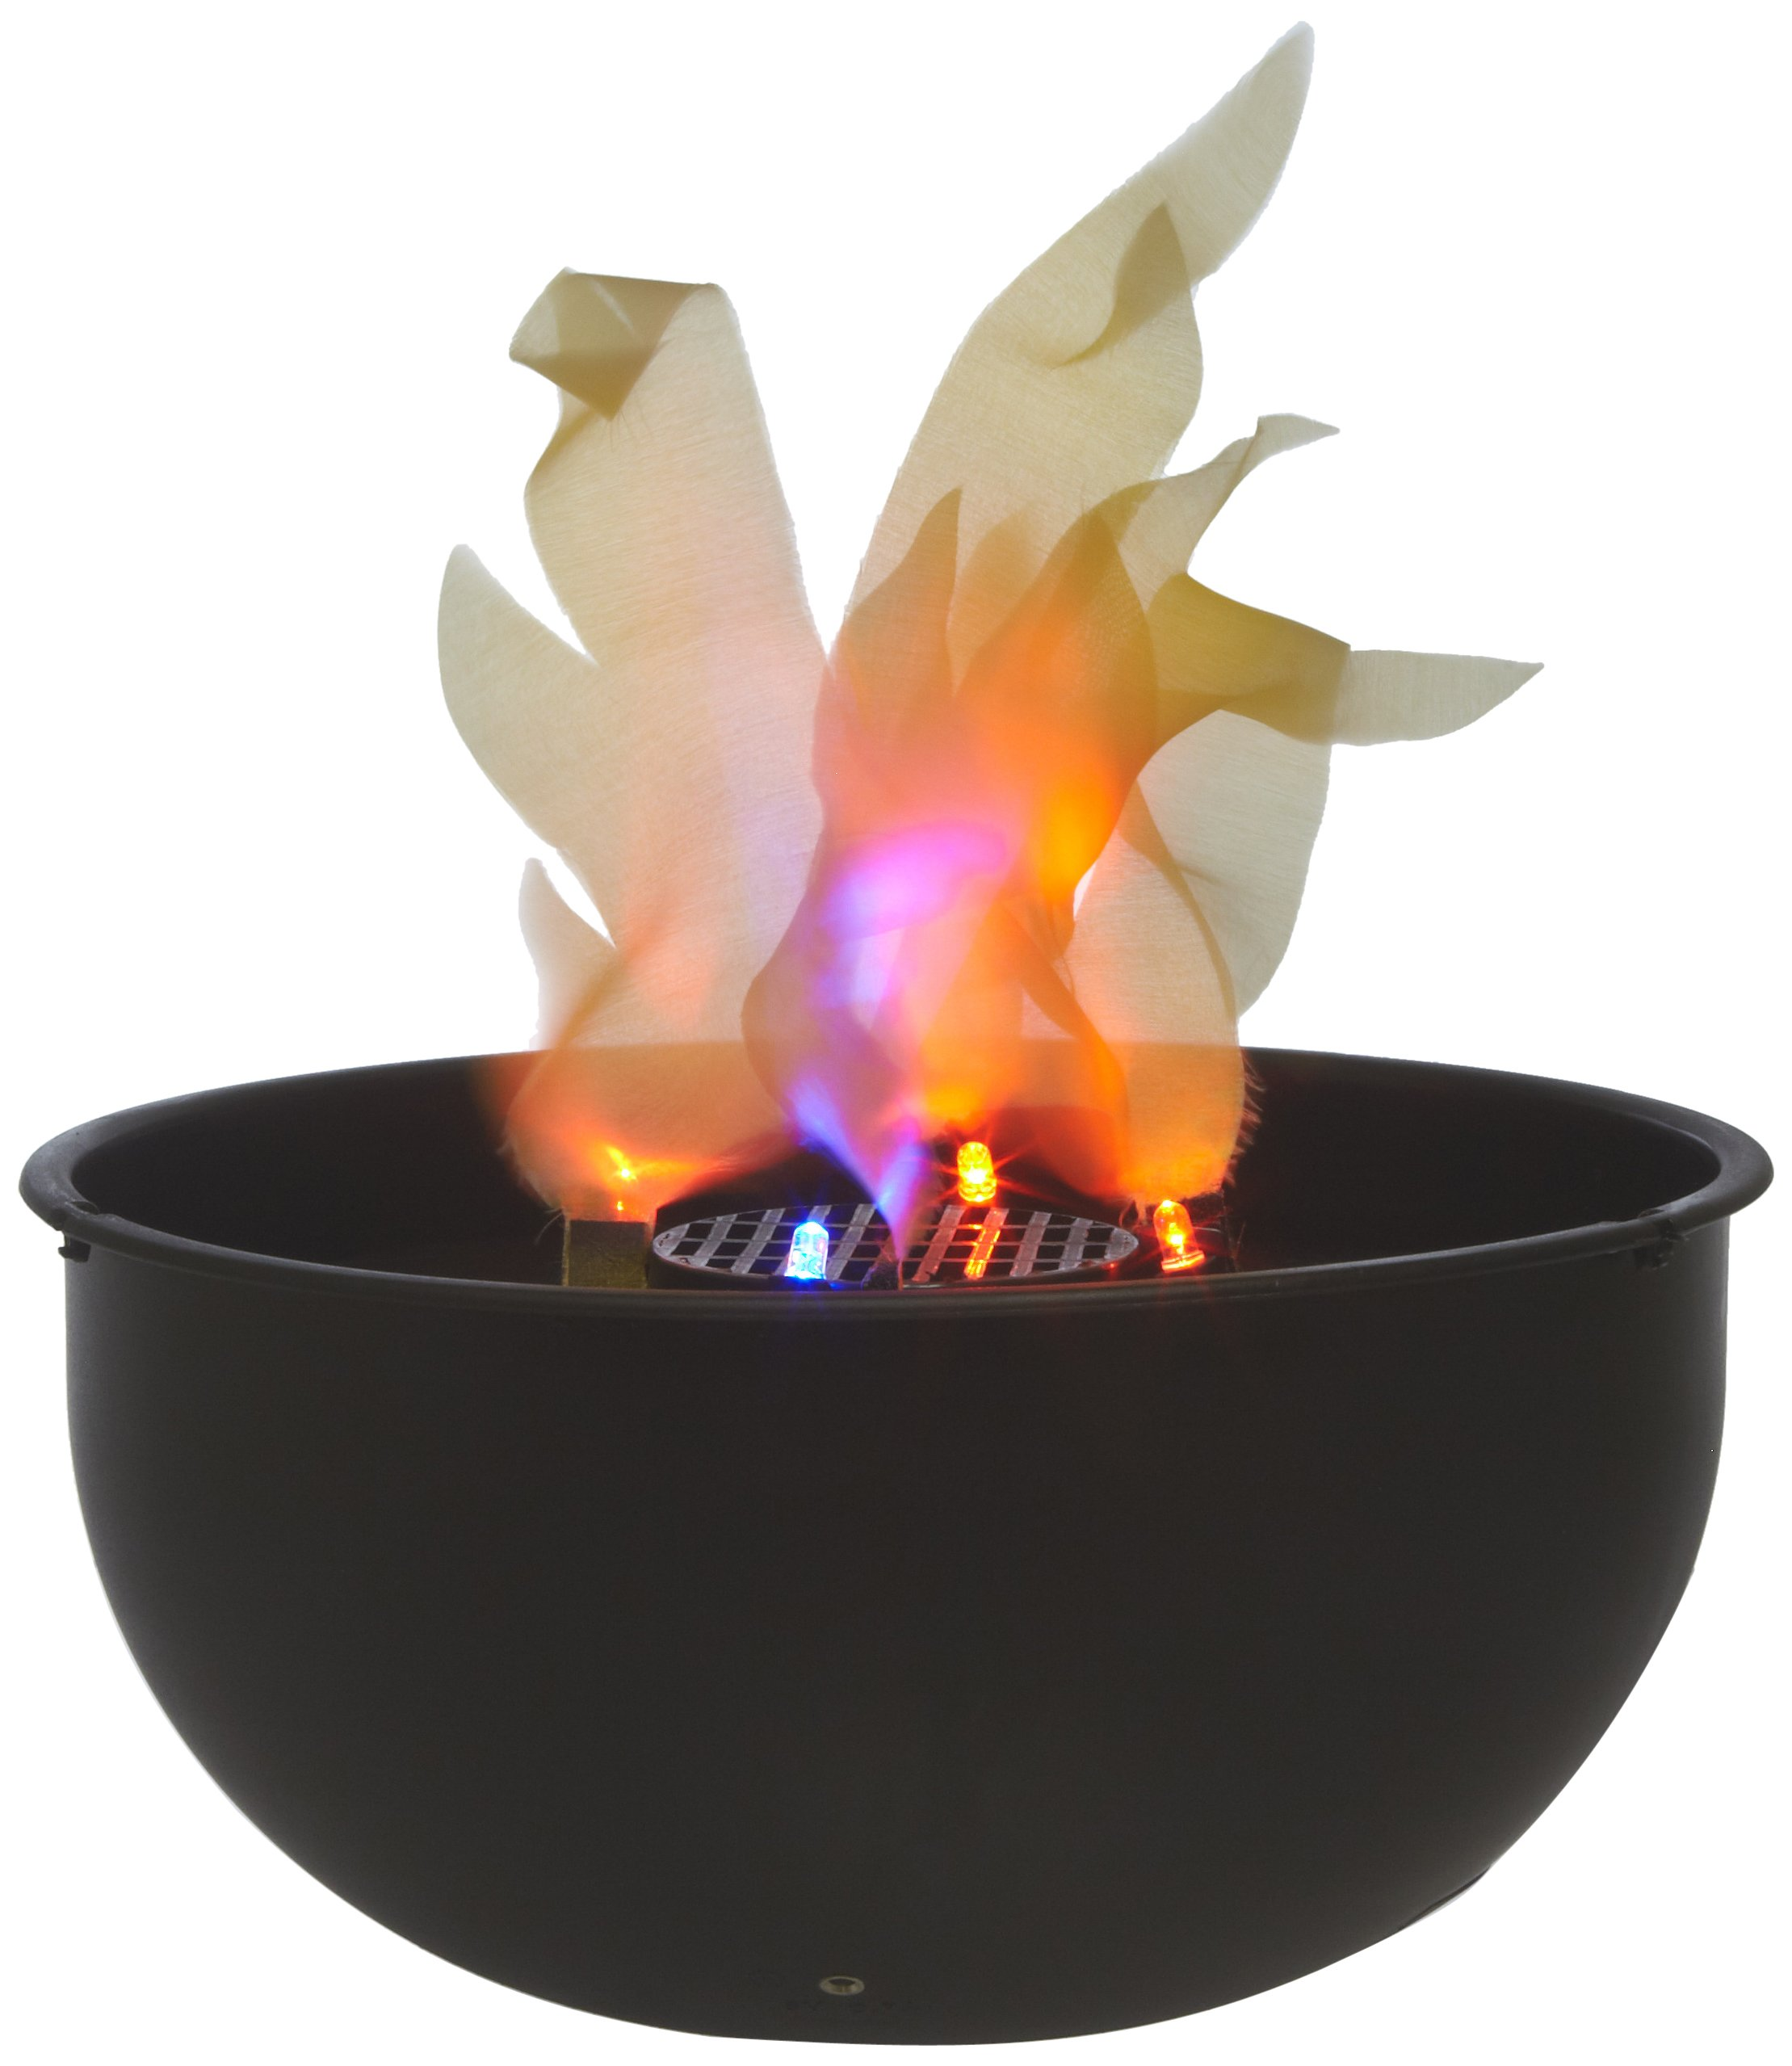 Fortune Products FLM-200 Cauldron Flame Light, 9.75'' Bowl Diameter x 4.5'' Height